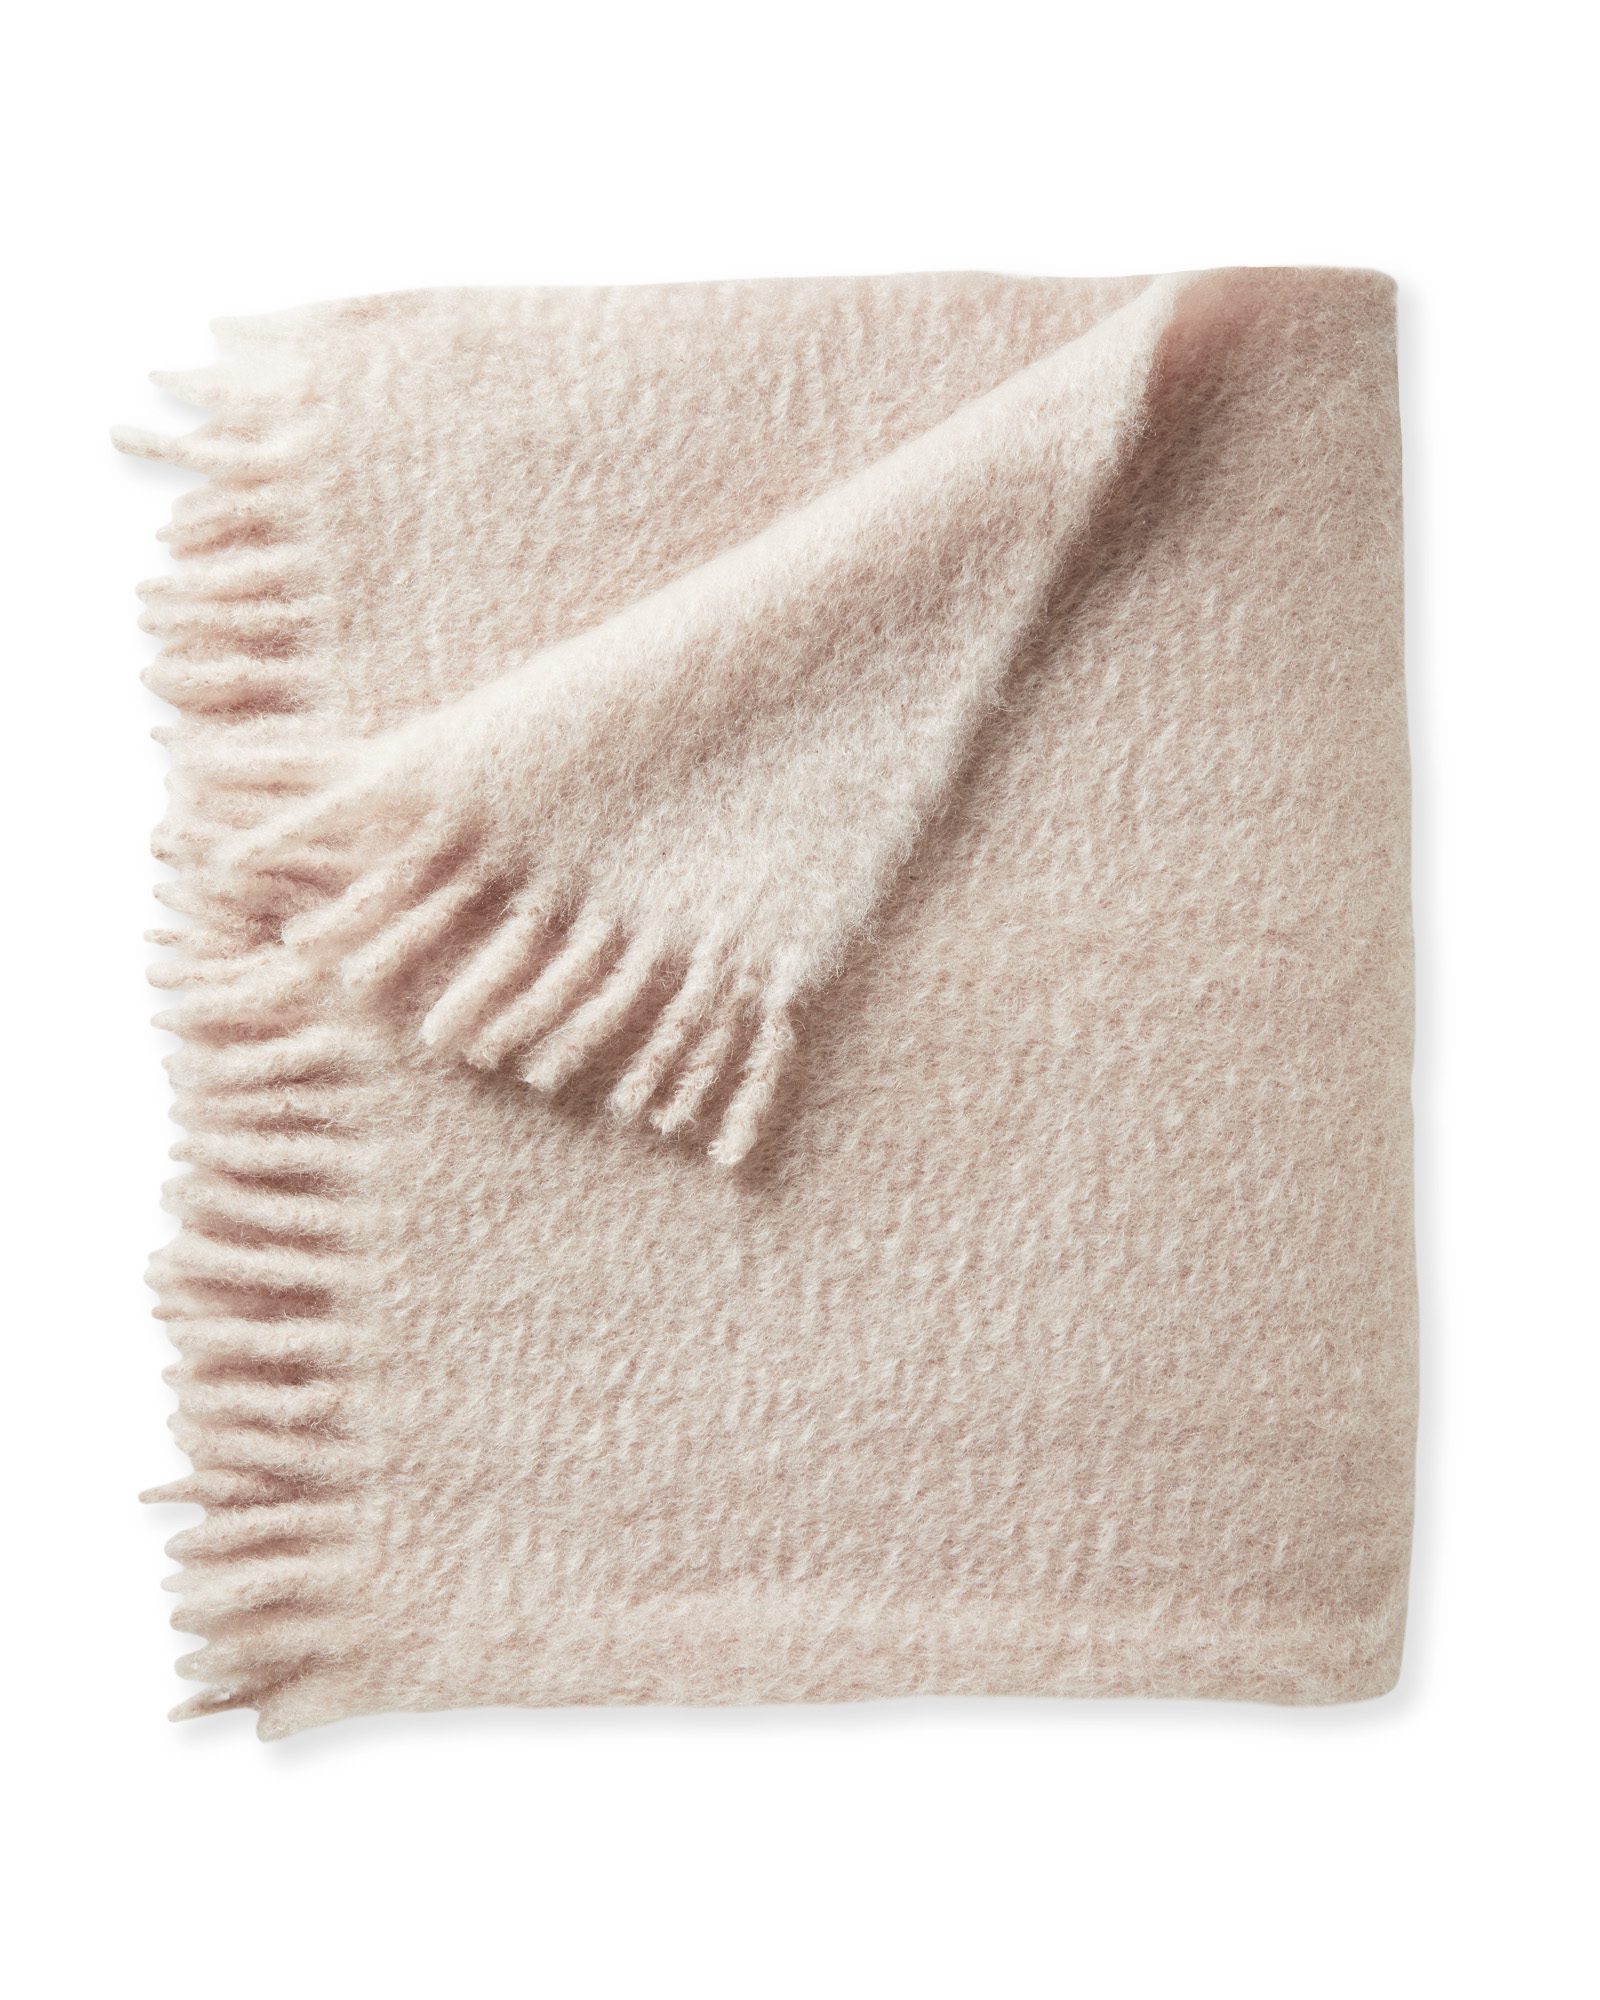 Albion Mohair Throw, Pink Sand